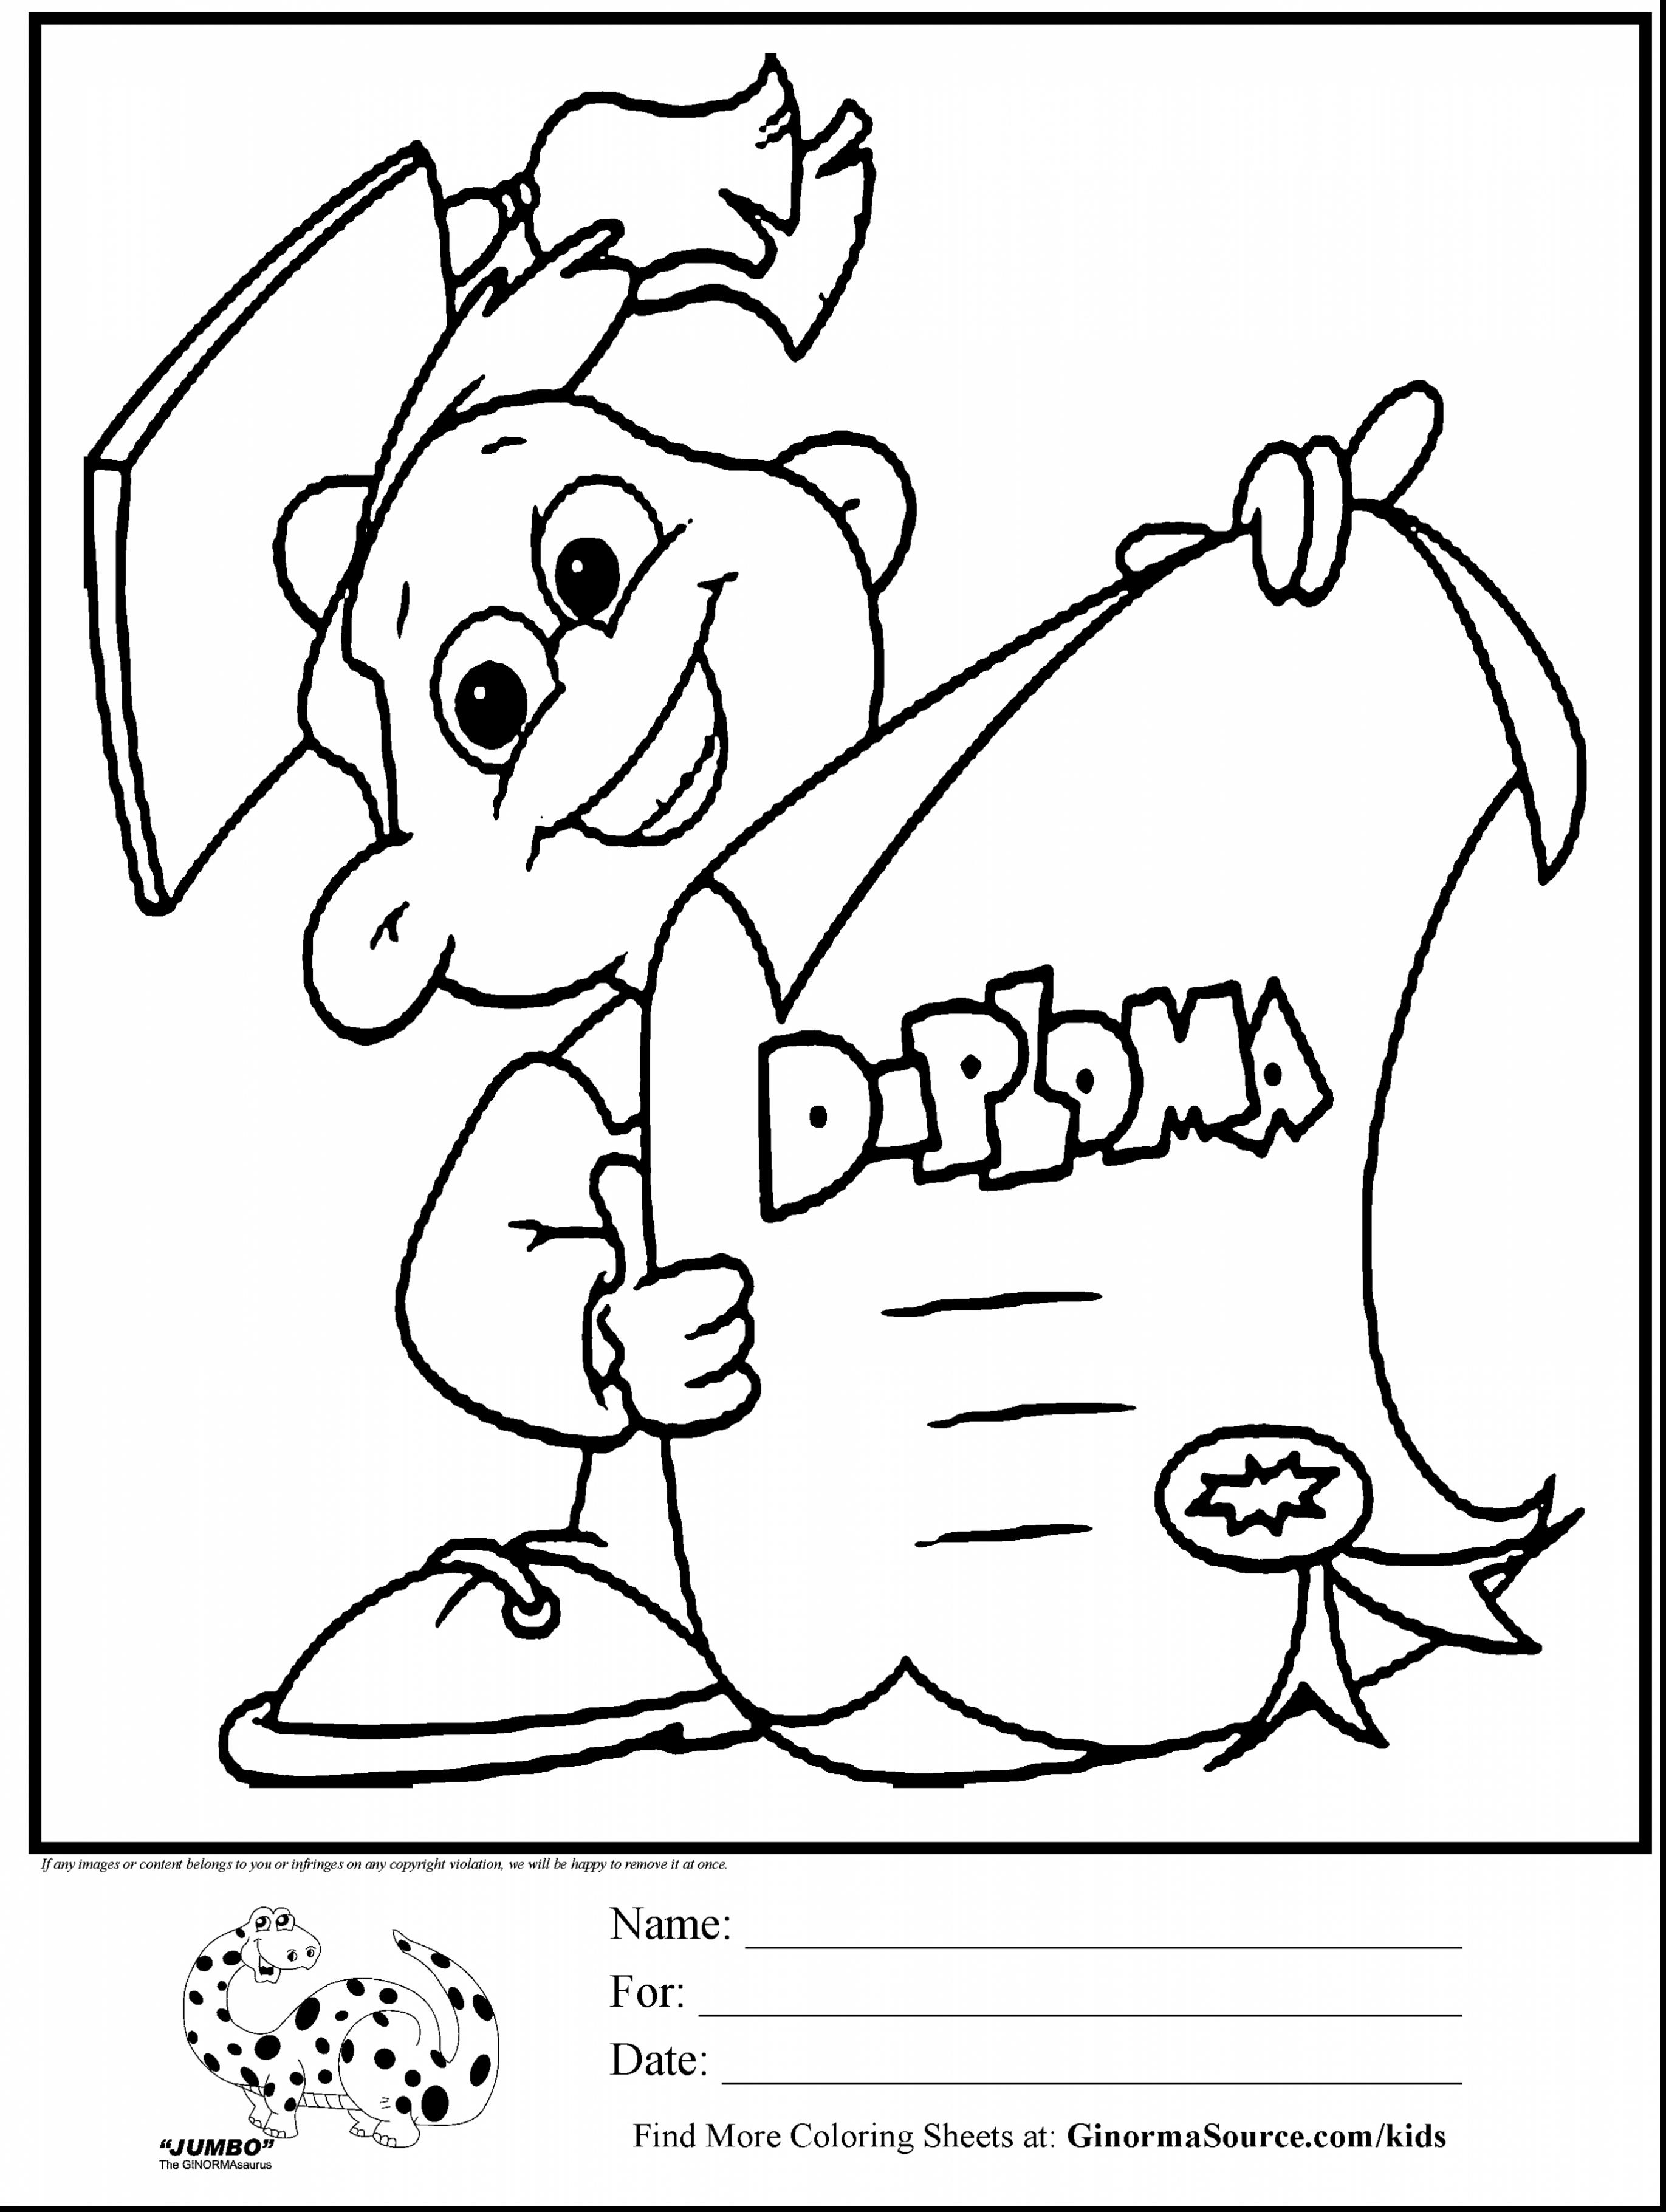 graduation drawings Preschool graduation coloring pages ebcs c2de3 jpg